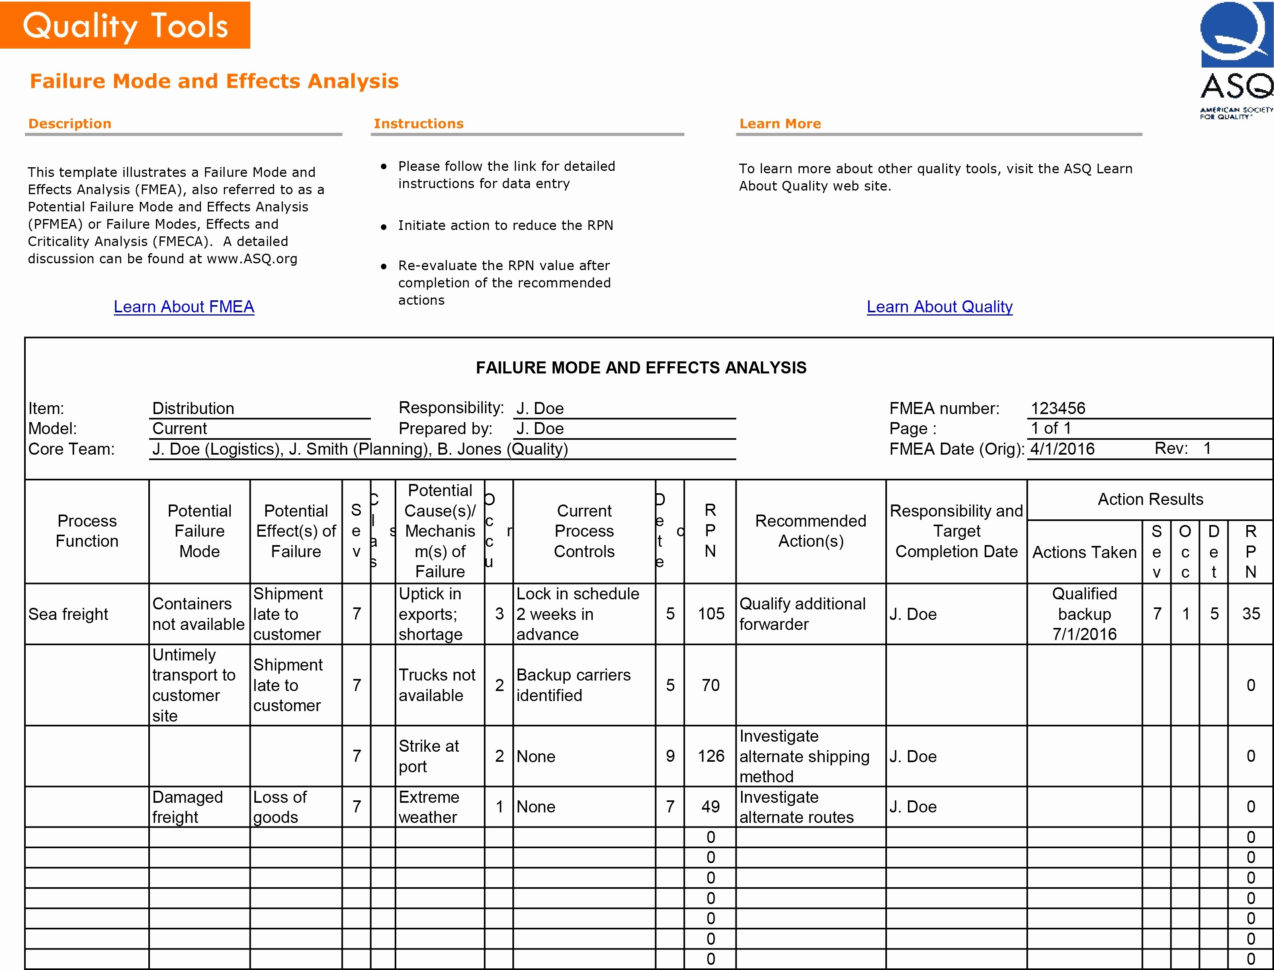 Gap Analysis Spreadsheet Inside 20 Critical Controls Gap Analysis Spreadsheet  Austinroofing